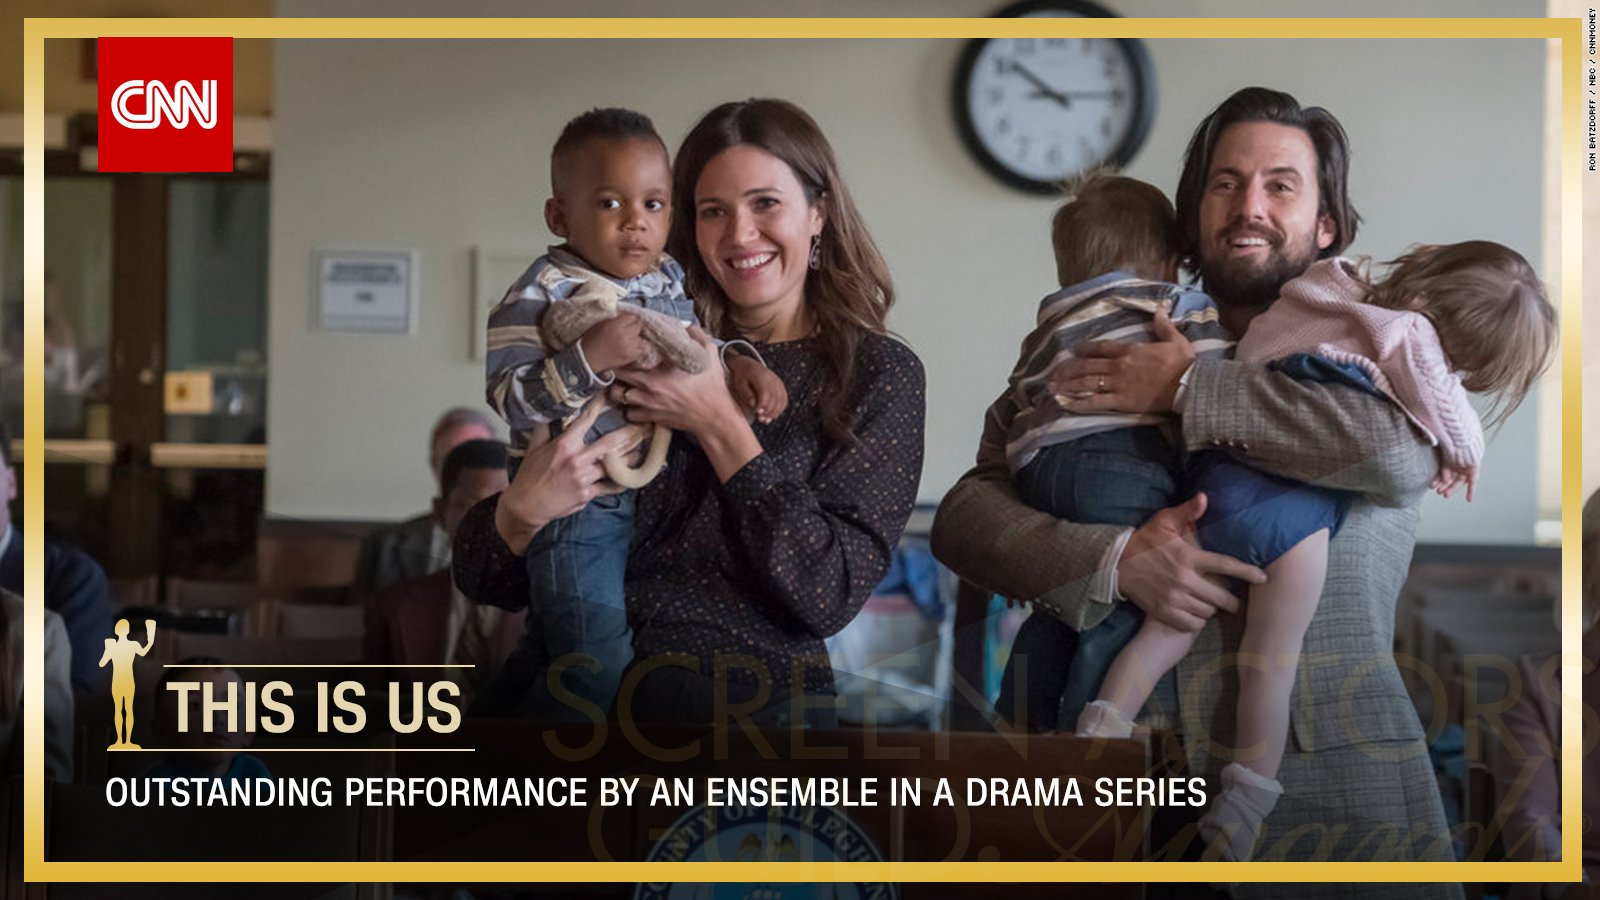 'This Is Us' wins Outstanding Performance by an Ensemble in a Drama Series. https://t.co/cPly9Wzl8b #SAGAwards https://t.co/QnEFVBXweh